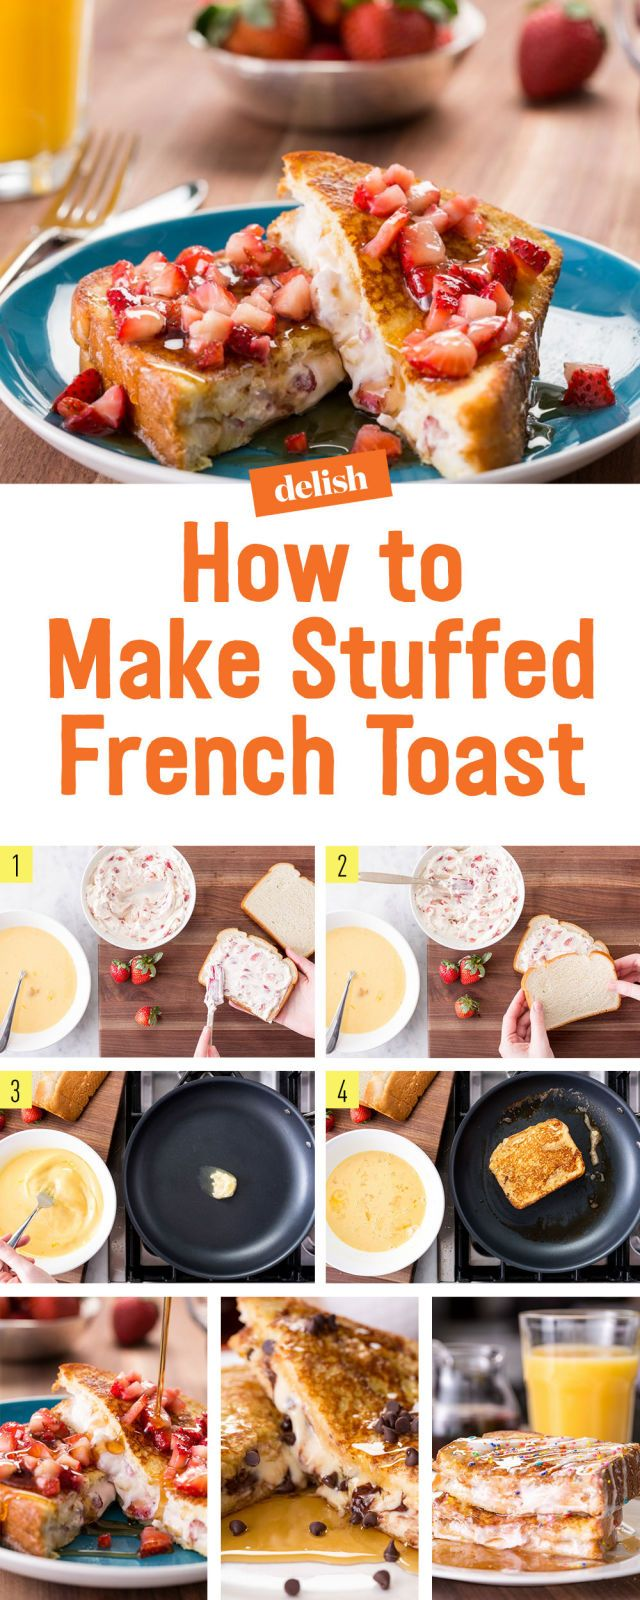 Here's The Right Way To Make Stuffed French Toast